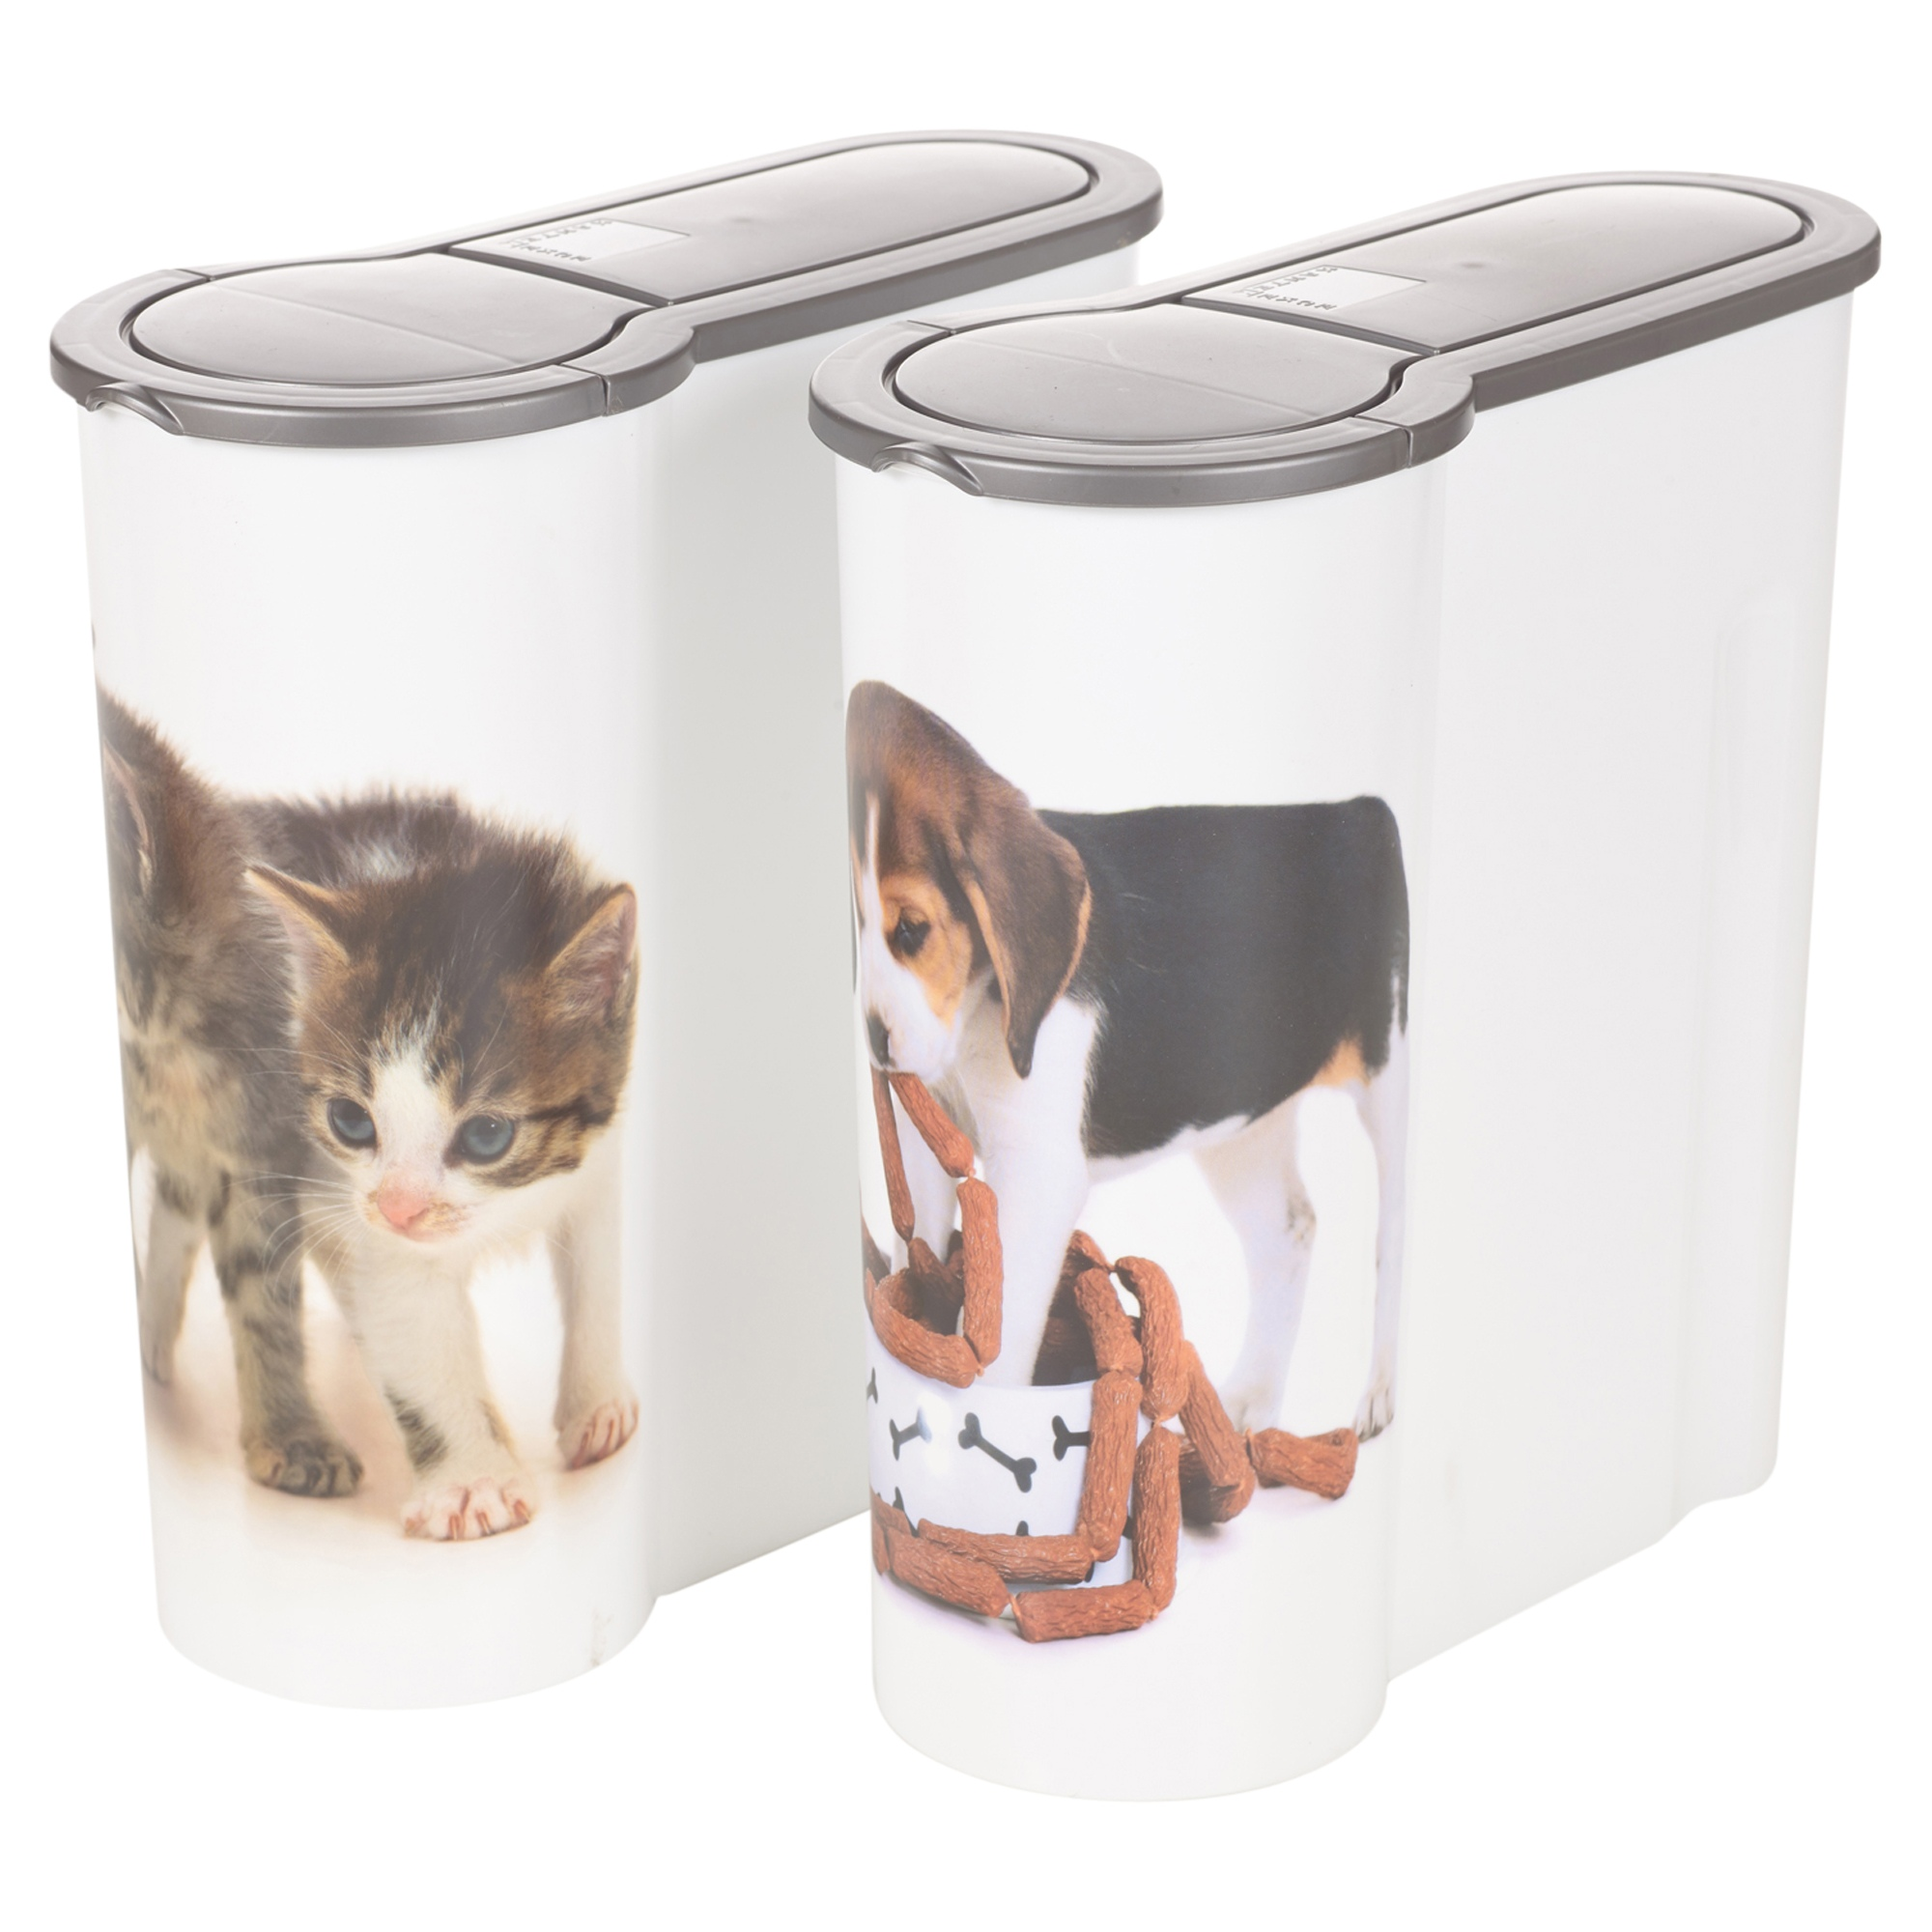 dog cat pet food storage container box bucket bin table top kitchen cereal style ebay. Black Bedroom Furniture Sets. Home Design Ideas